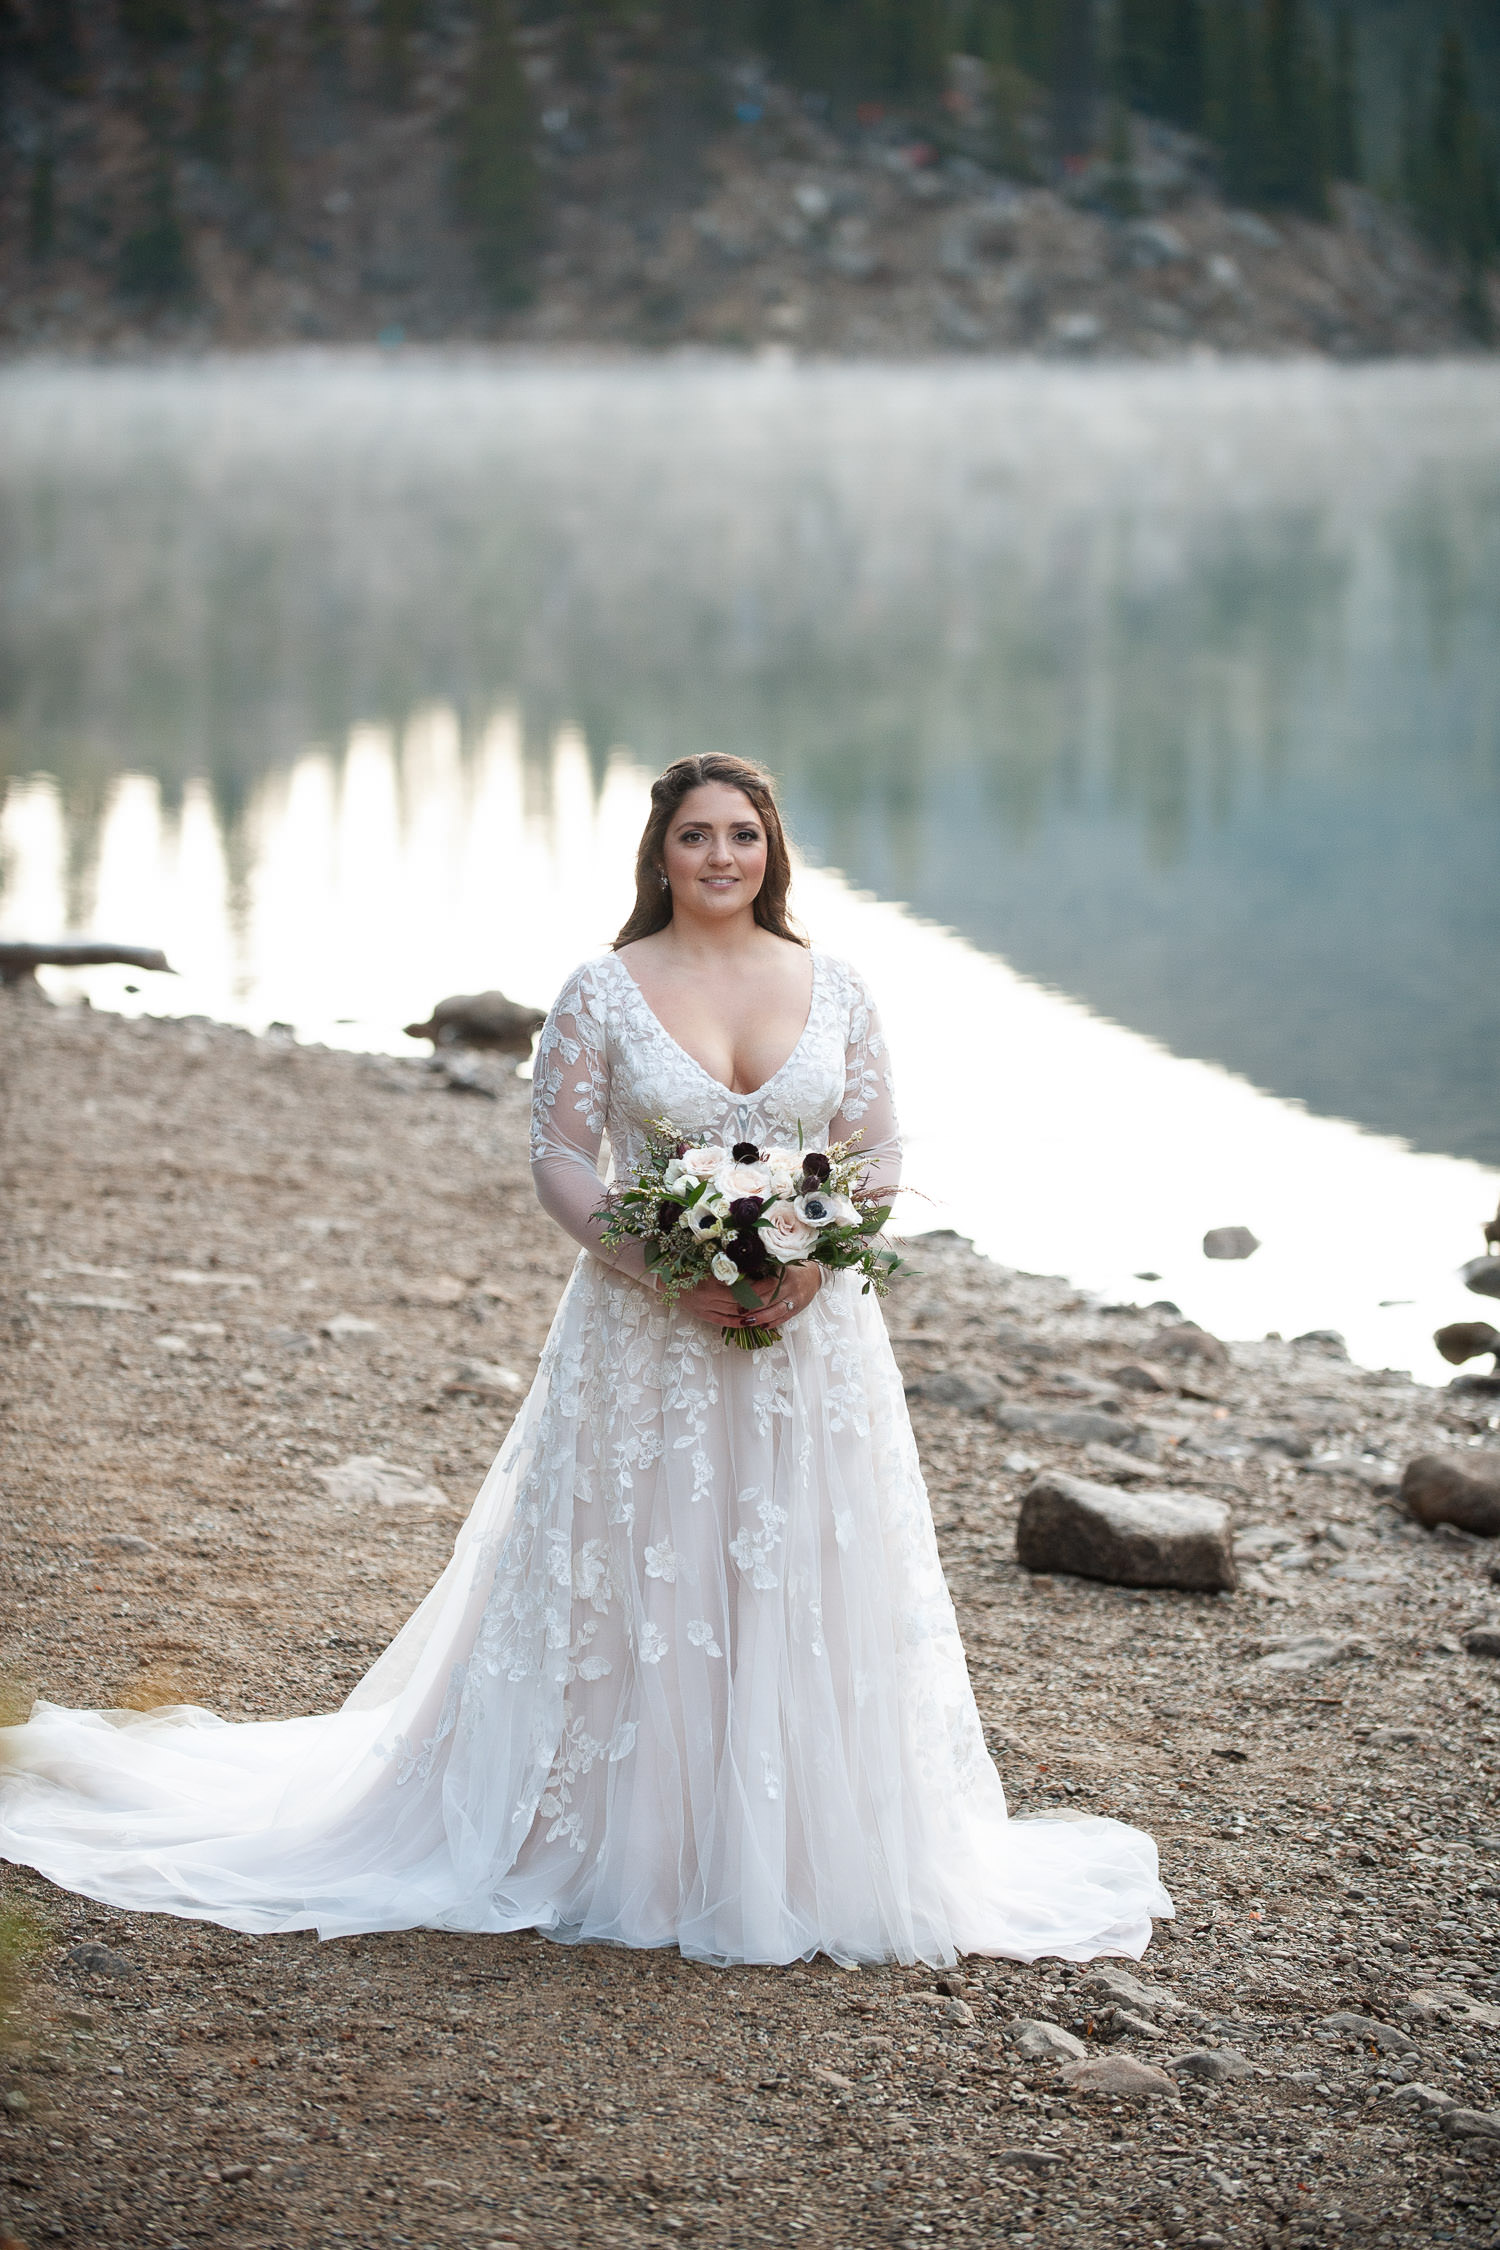 Bride waits for her groom at her Moraine Lake elopement captured by Tara Whittaker Photography